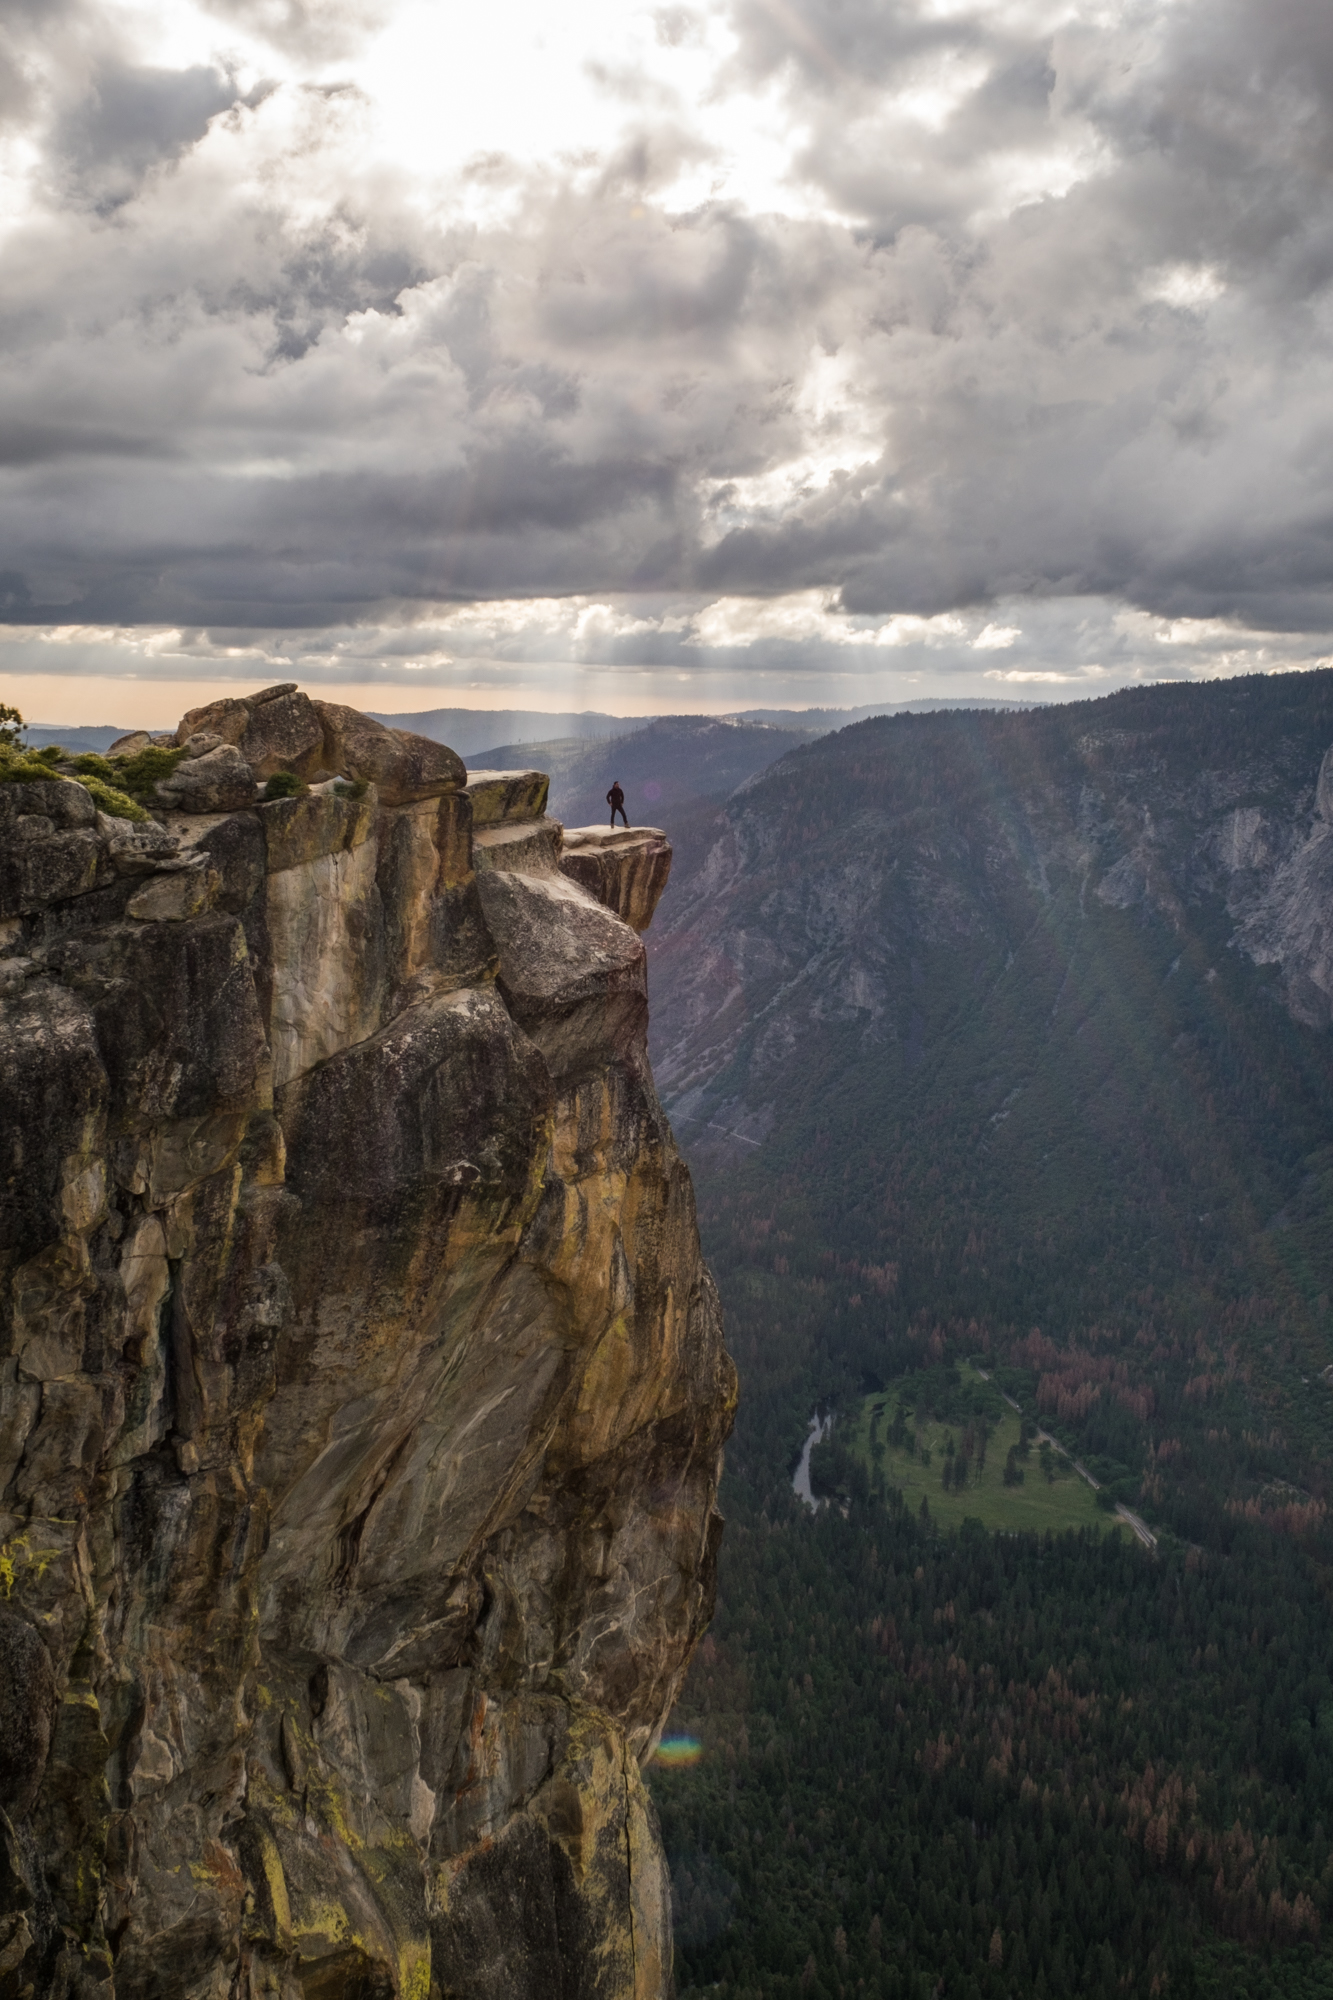 I love this photo. It really speaks to the grandeur of the area. Taft Point is an epic lookout.